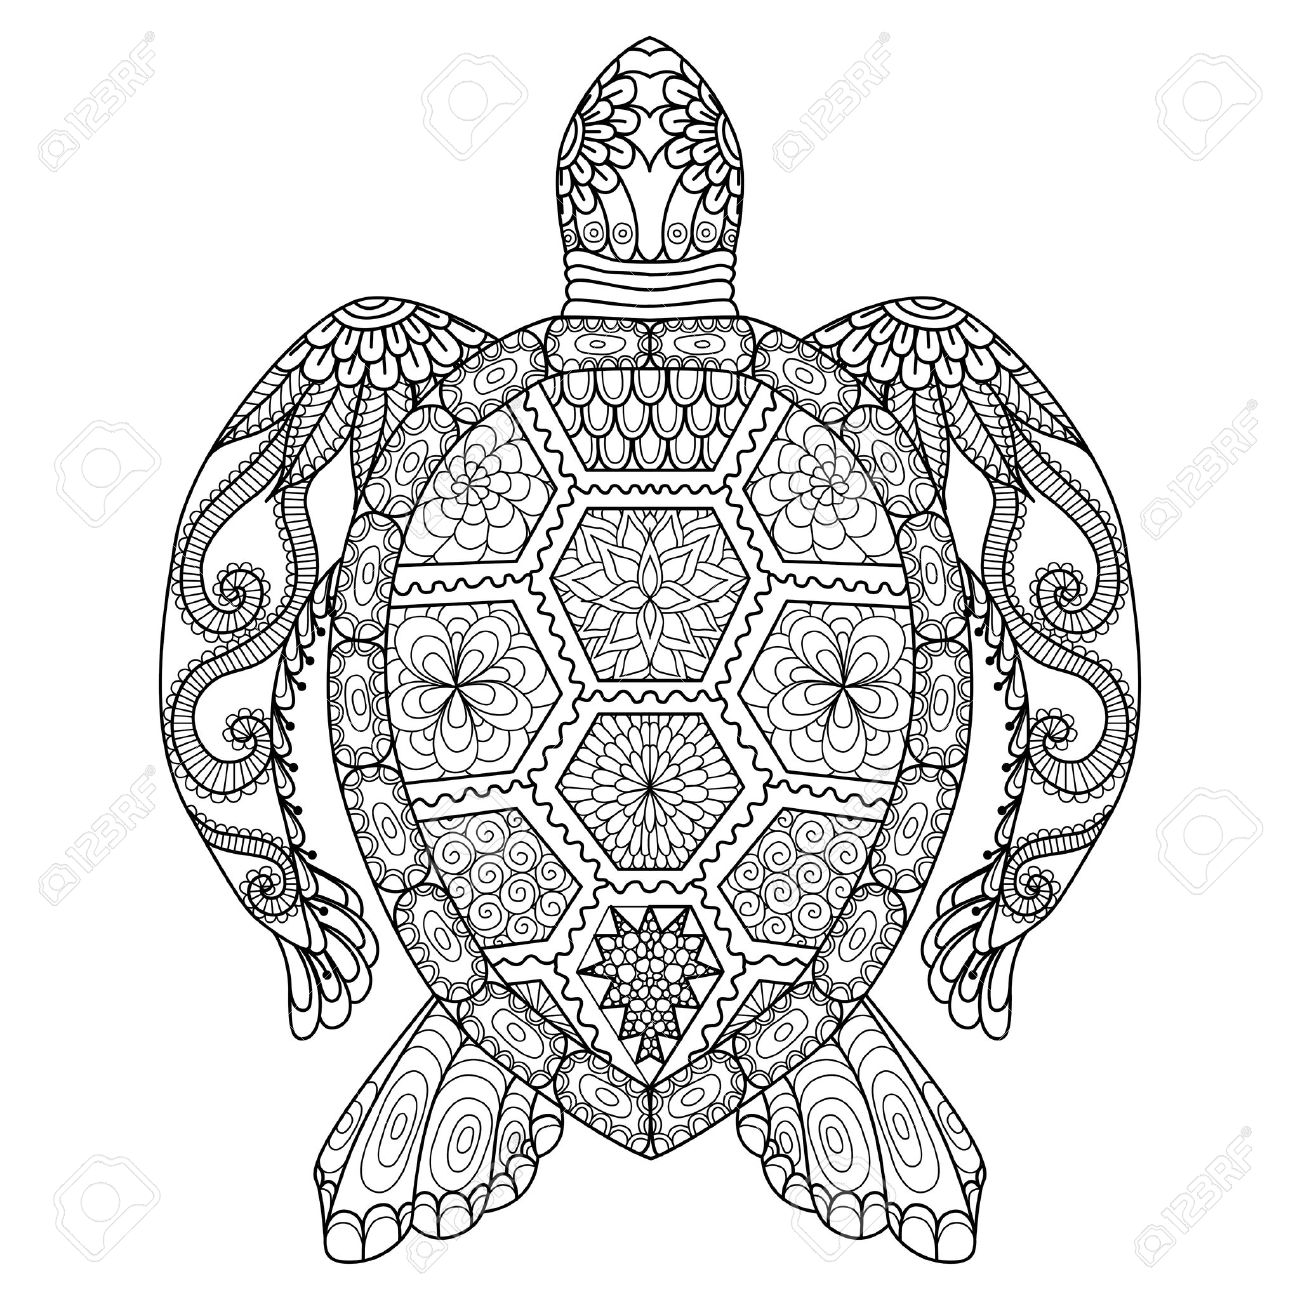 Coloriage Adulte Effet.Coloriage Adulte Tortue